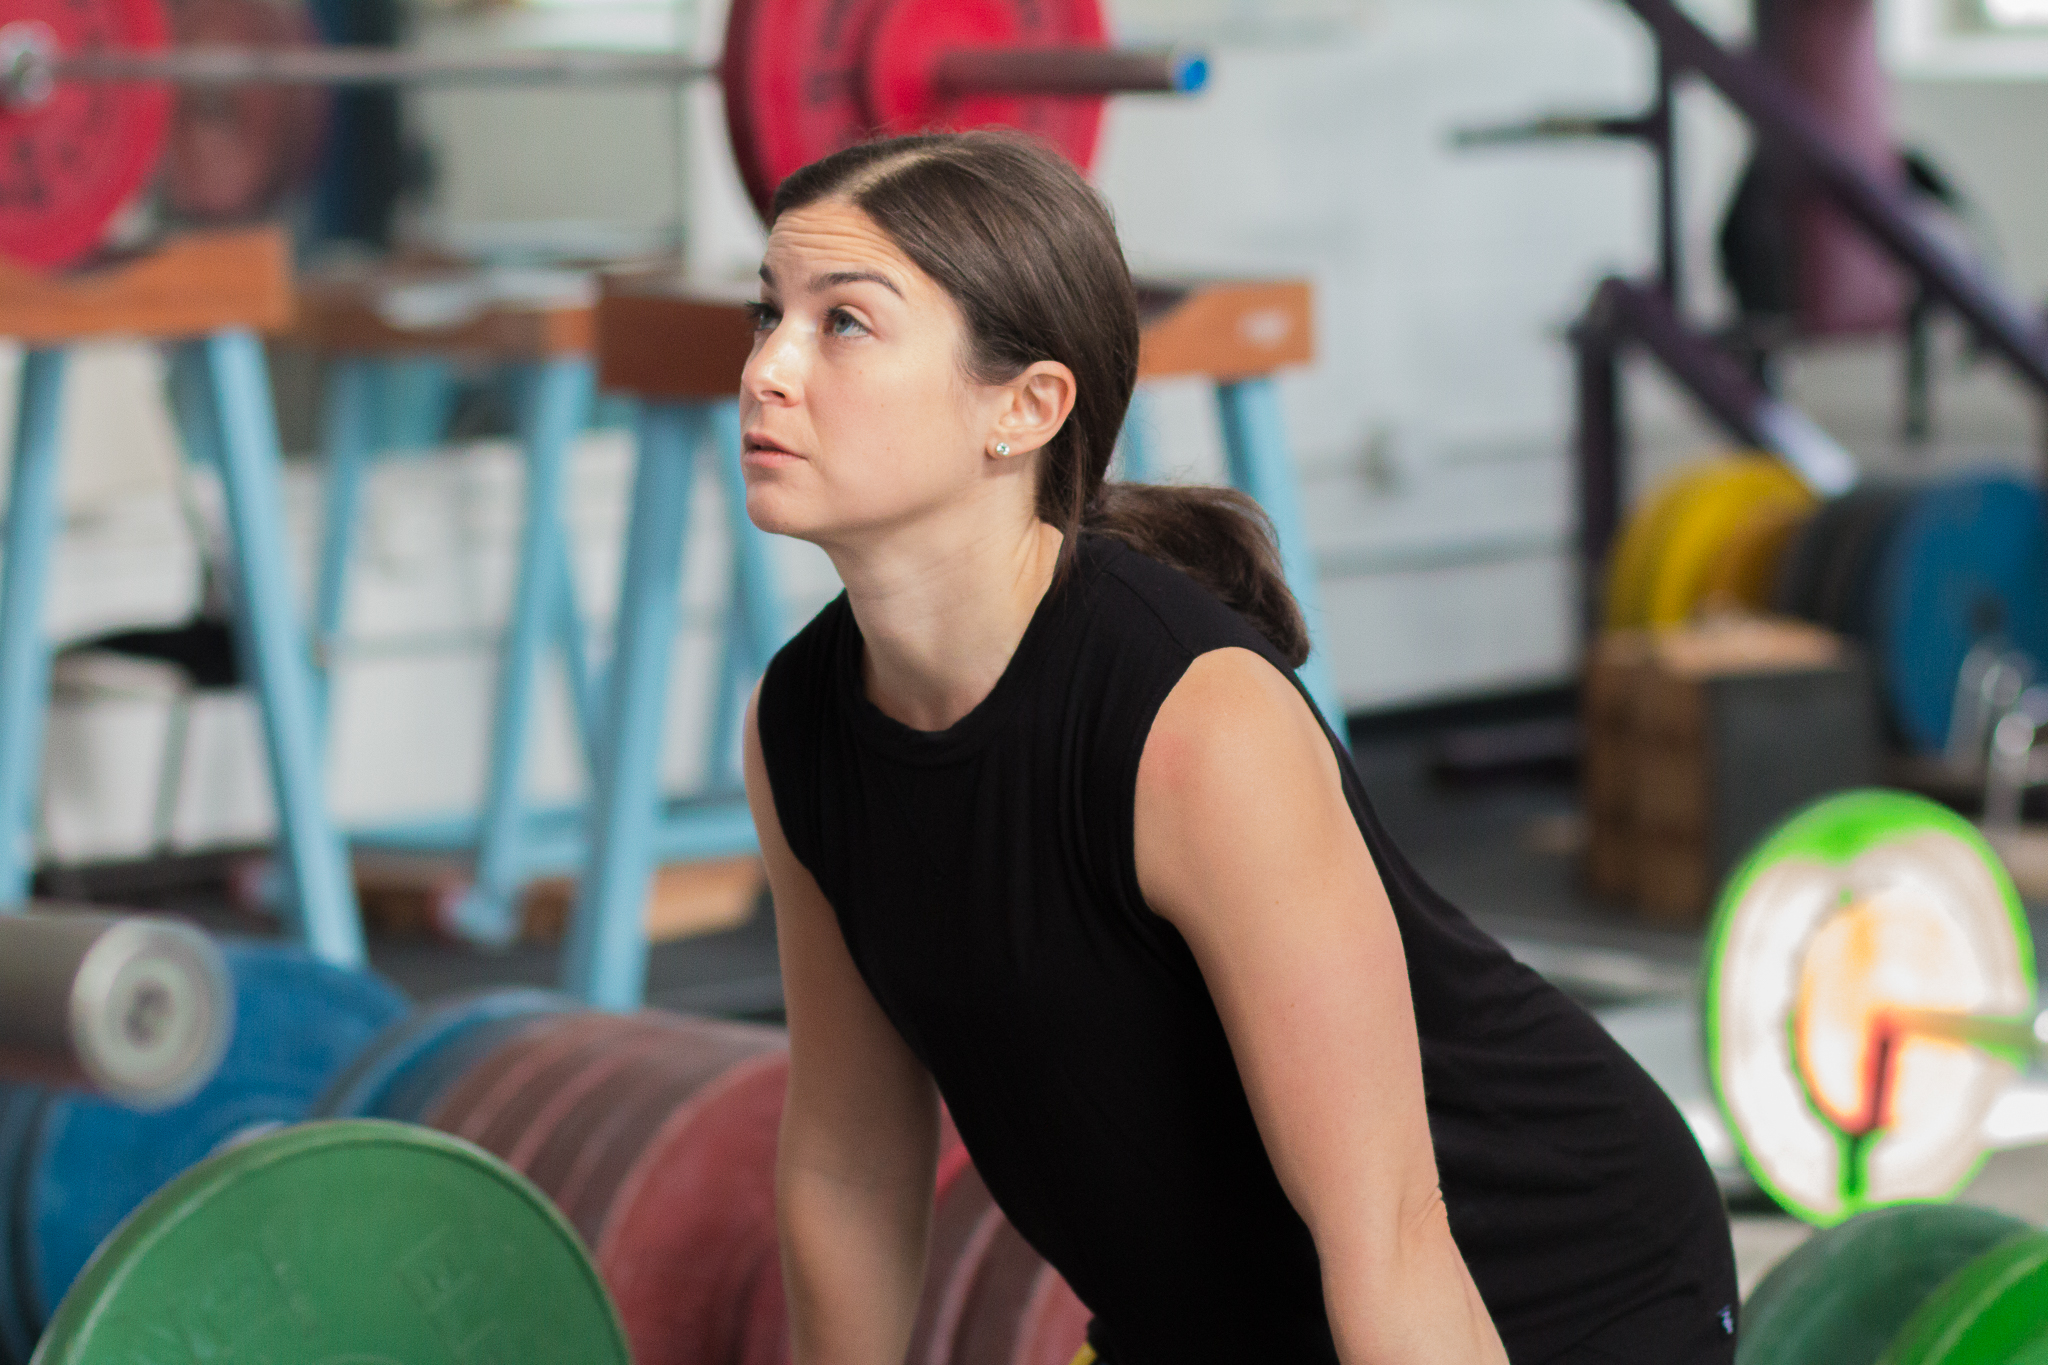 lauren-weightlifters-olympic-weightlifting-featured-everyday-lifters (9 of 31).jpg